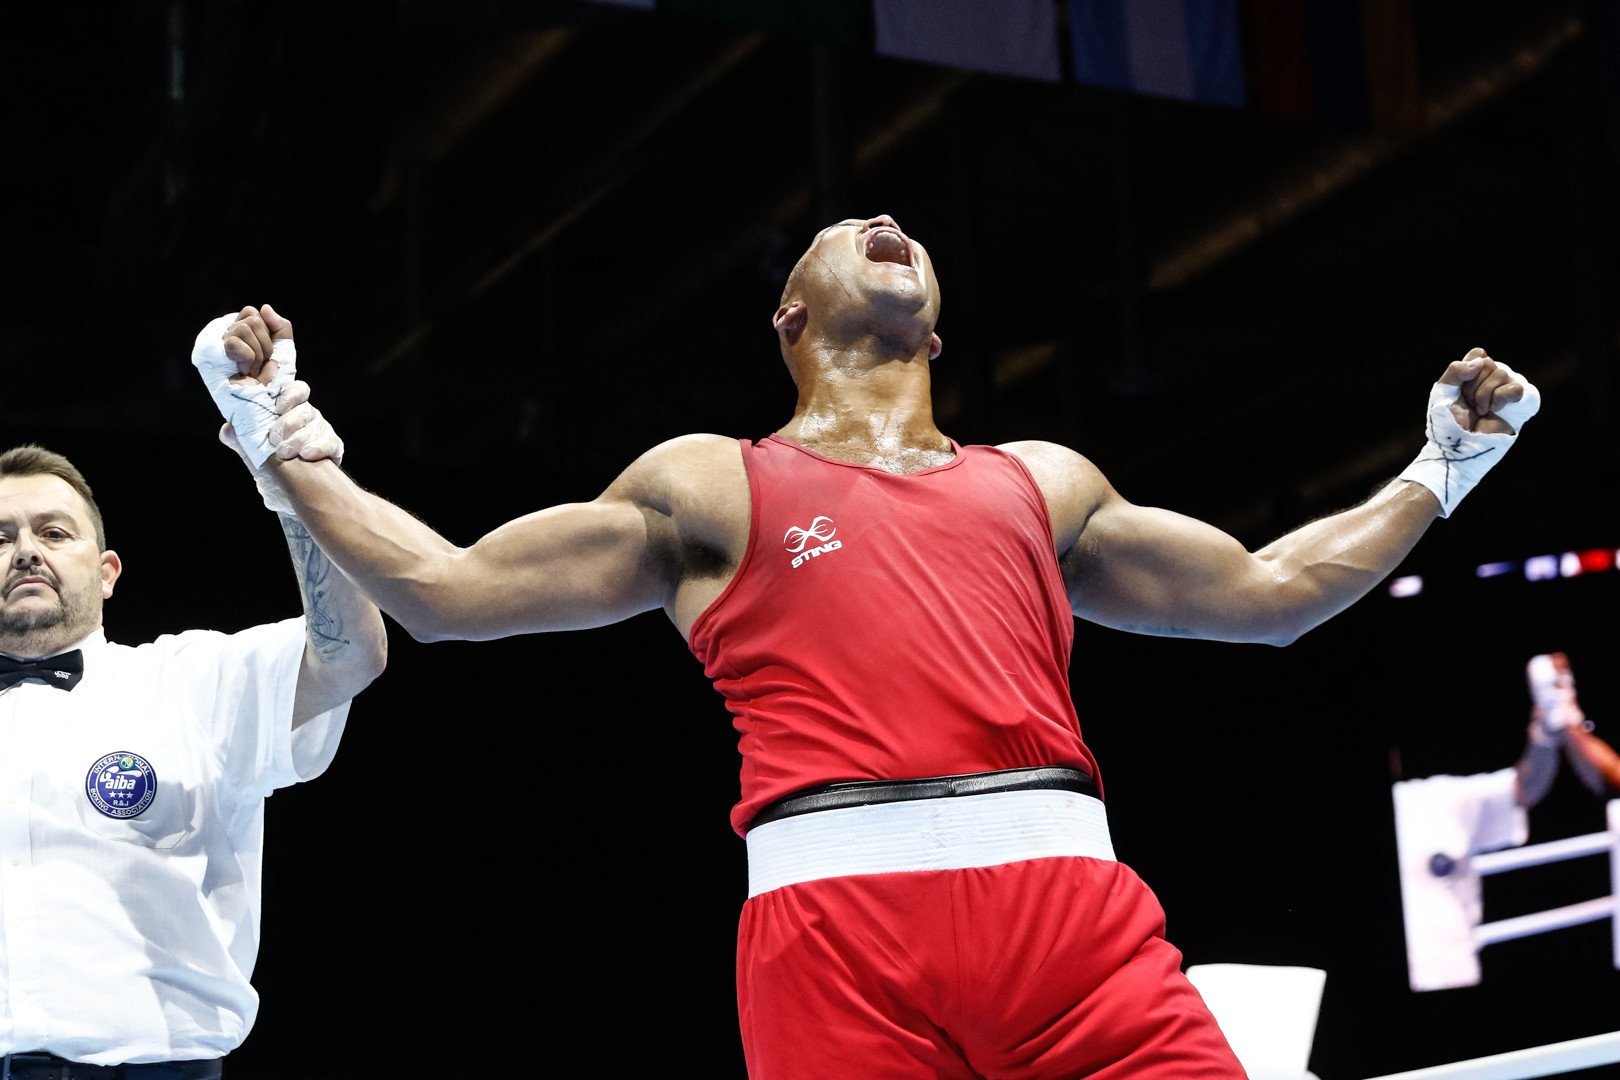 England's Commonwealth champion Frazer Clarke was booed as he narrowly defeated Russia's Maksim Babanin at the AIBA World Championships ©Yekaterinburg 2019